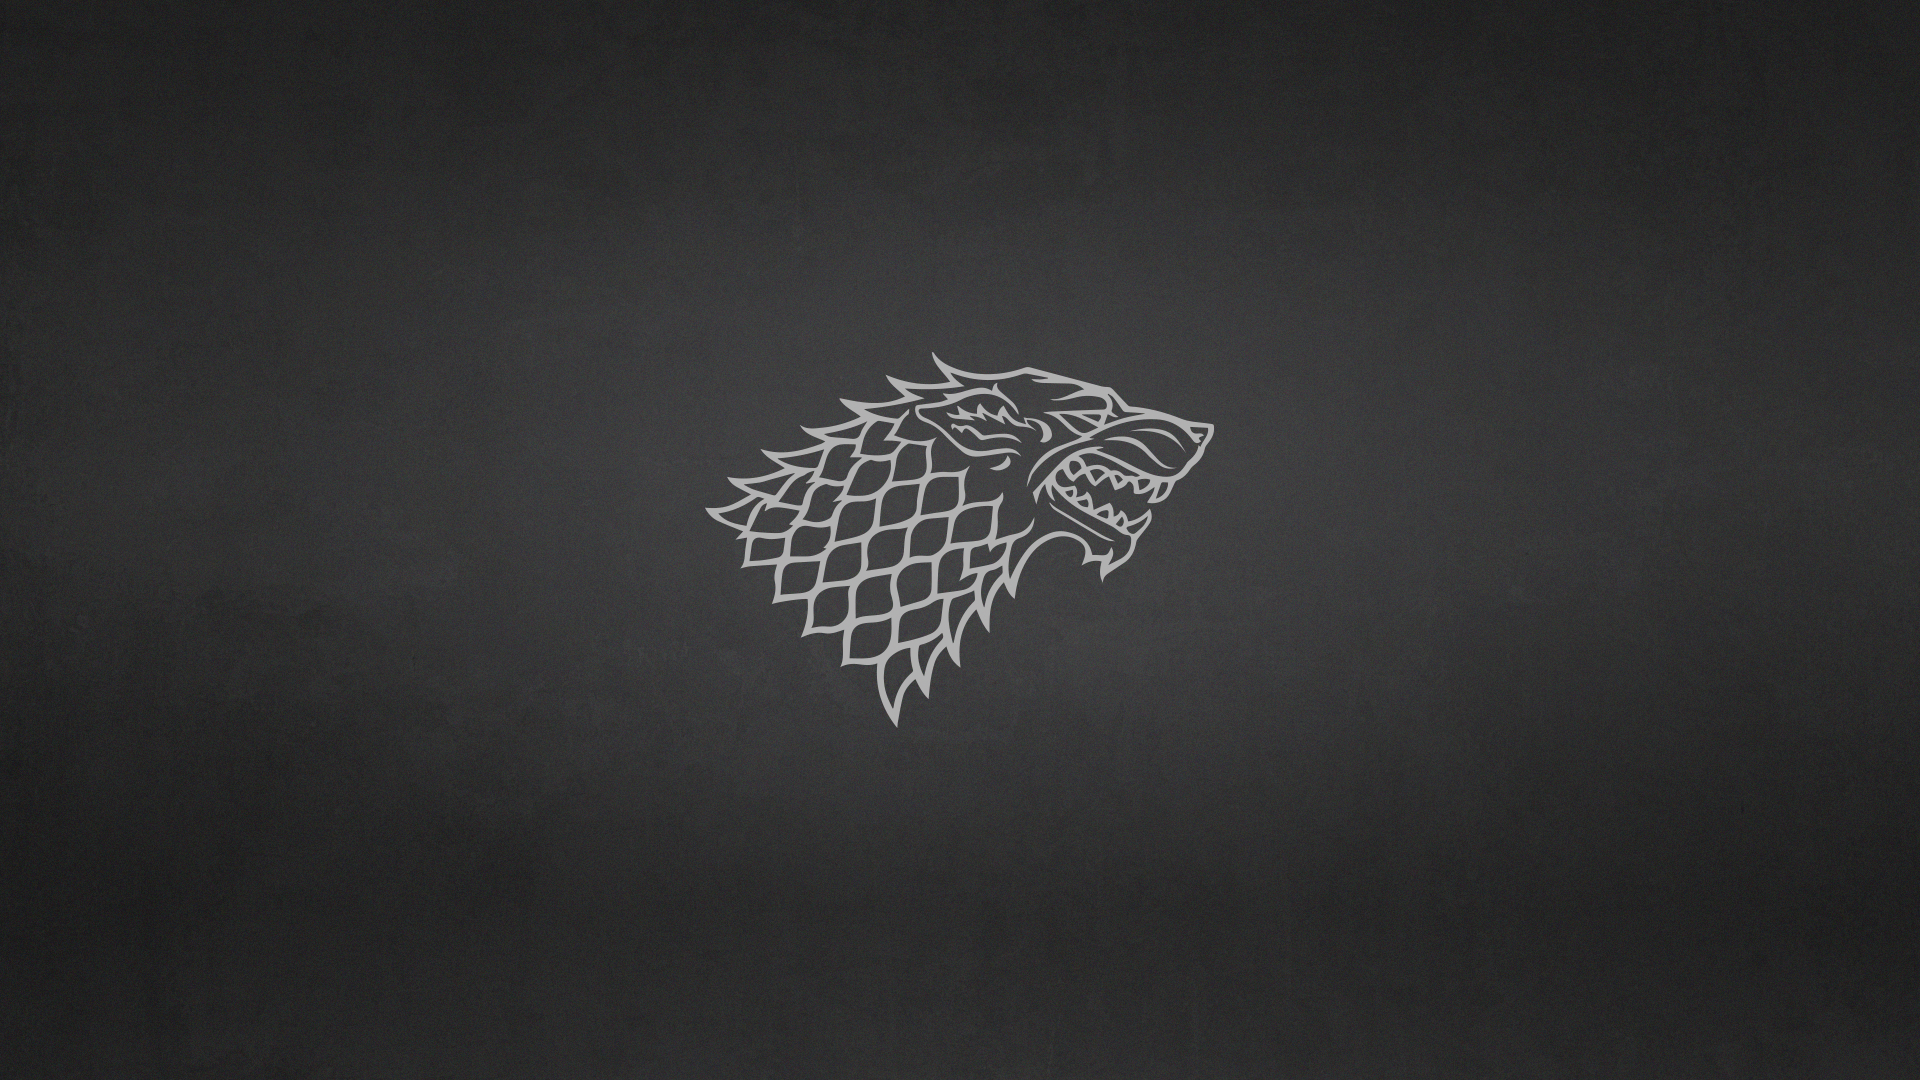 Game of Thrones: House Stark Minimalist Wallpaper